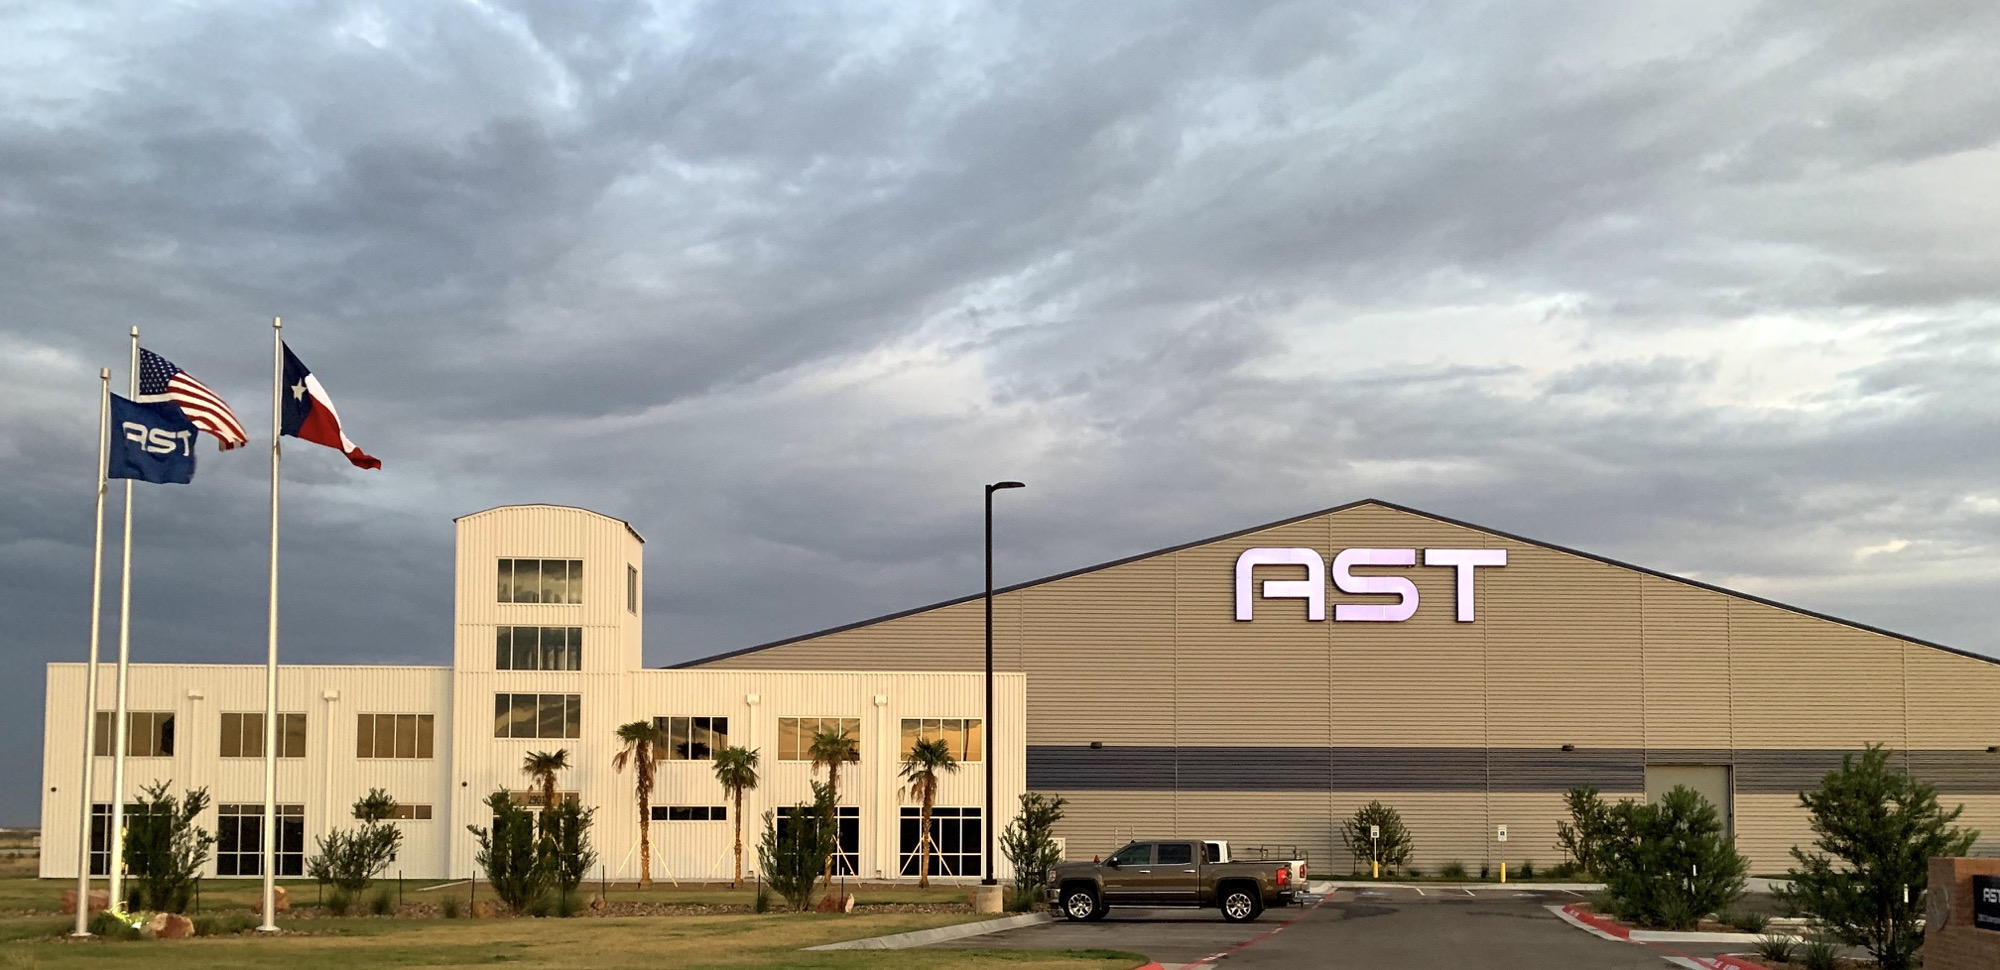 AST Midland International Air and Space Port